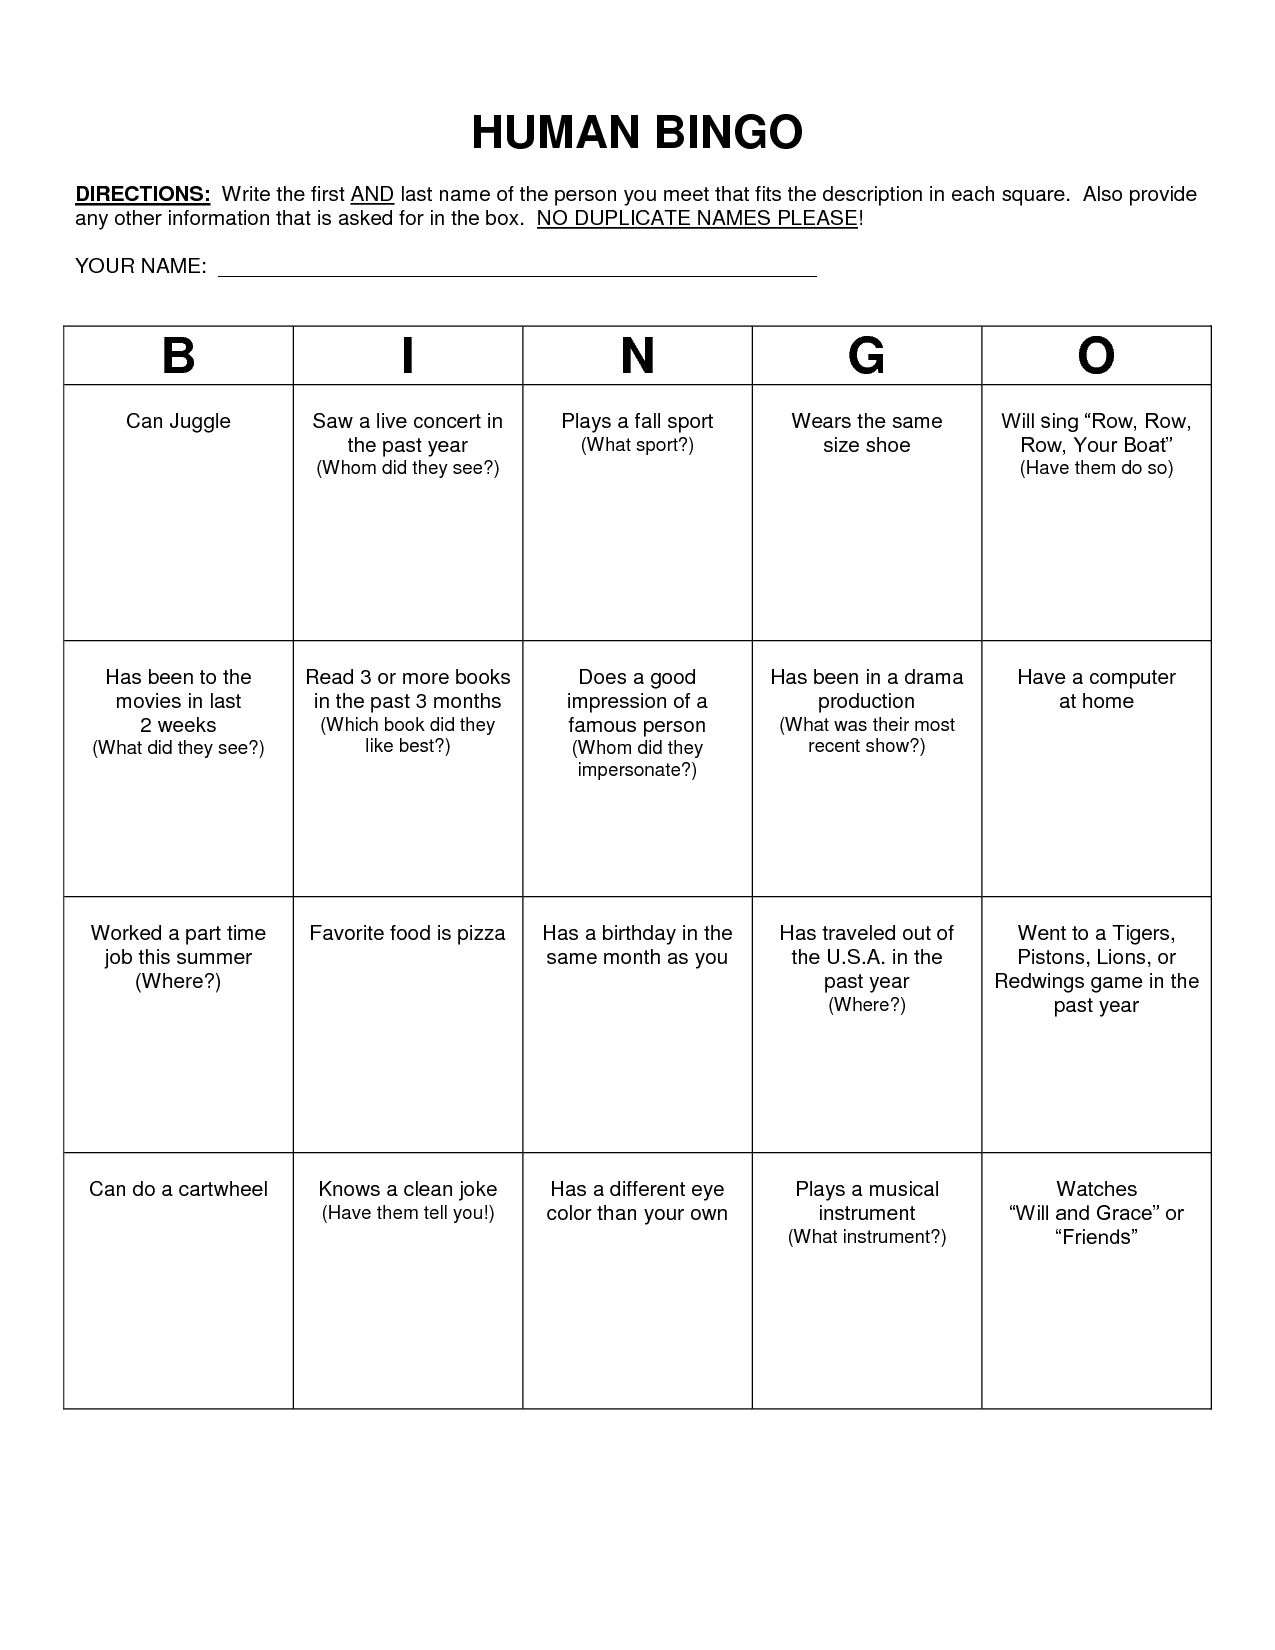 Human Bingo Scavenger Hunt Template | Retreat ideas | Pinterest